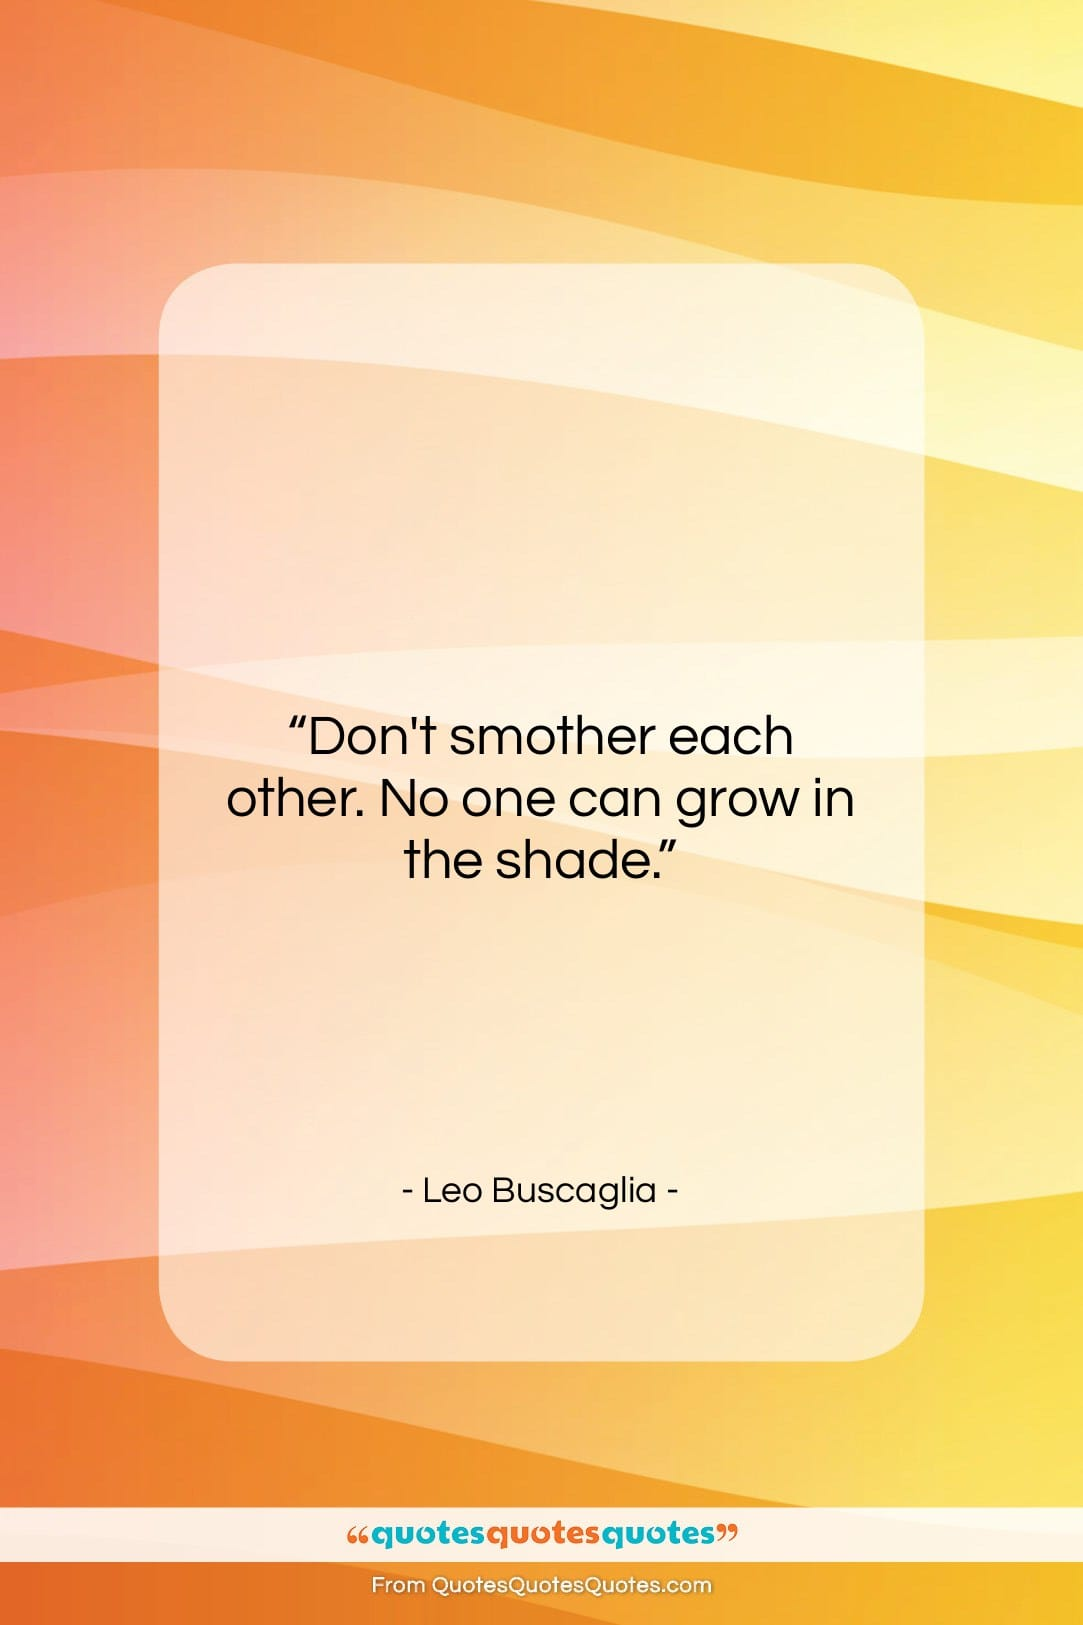 """Leo Buscaglia quote: """"Don't smother each other. No one can…""""- at QuotesQuotesQuotes.com"""